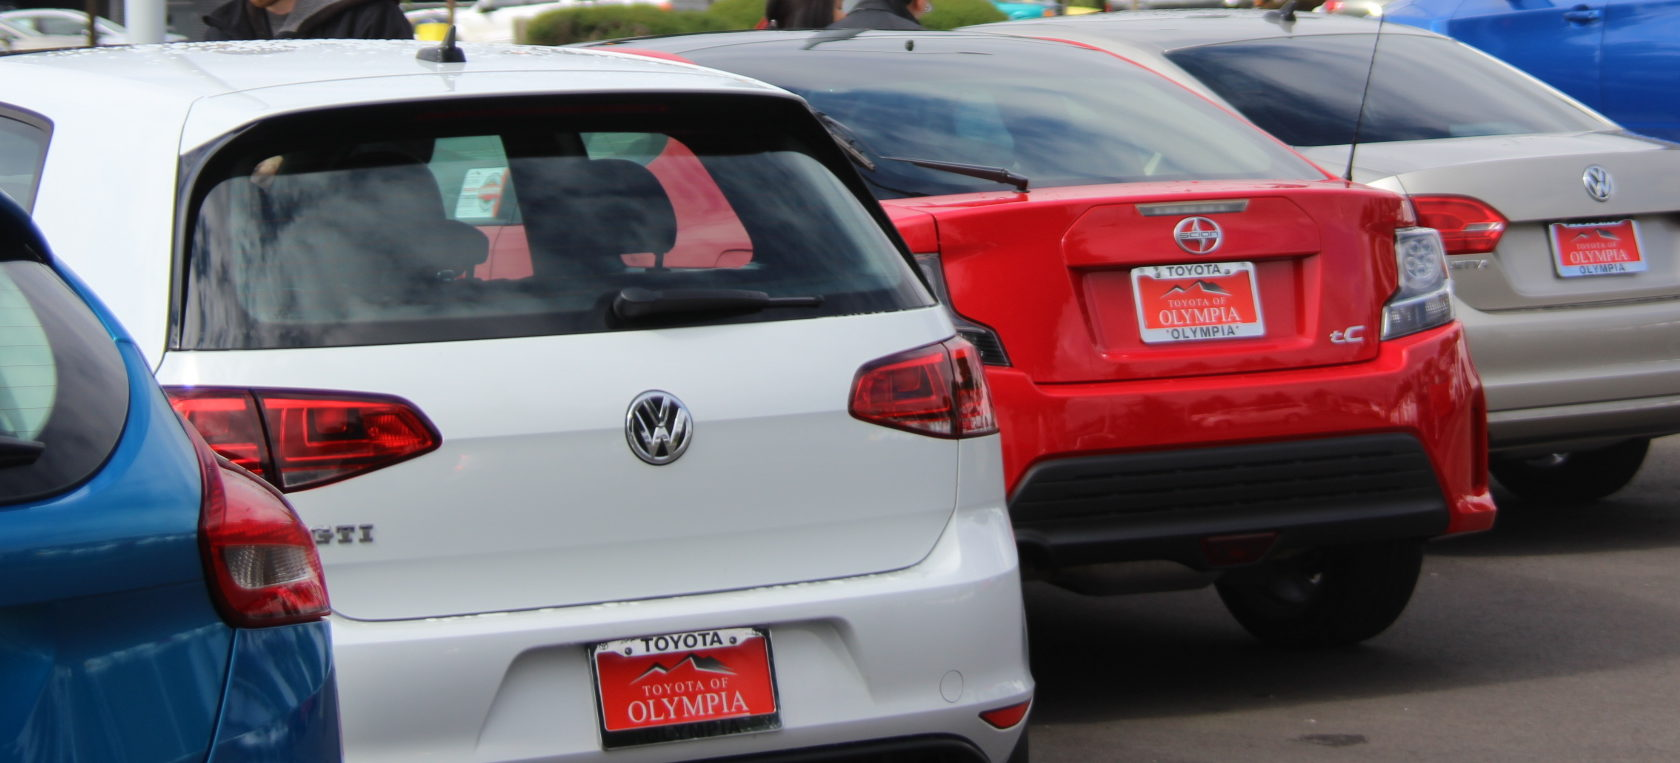 Used Cars Olympia >> Toyota Of Olympia Offers Value Selection And Service When